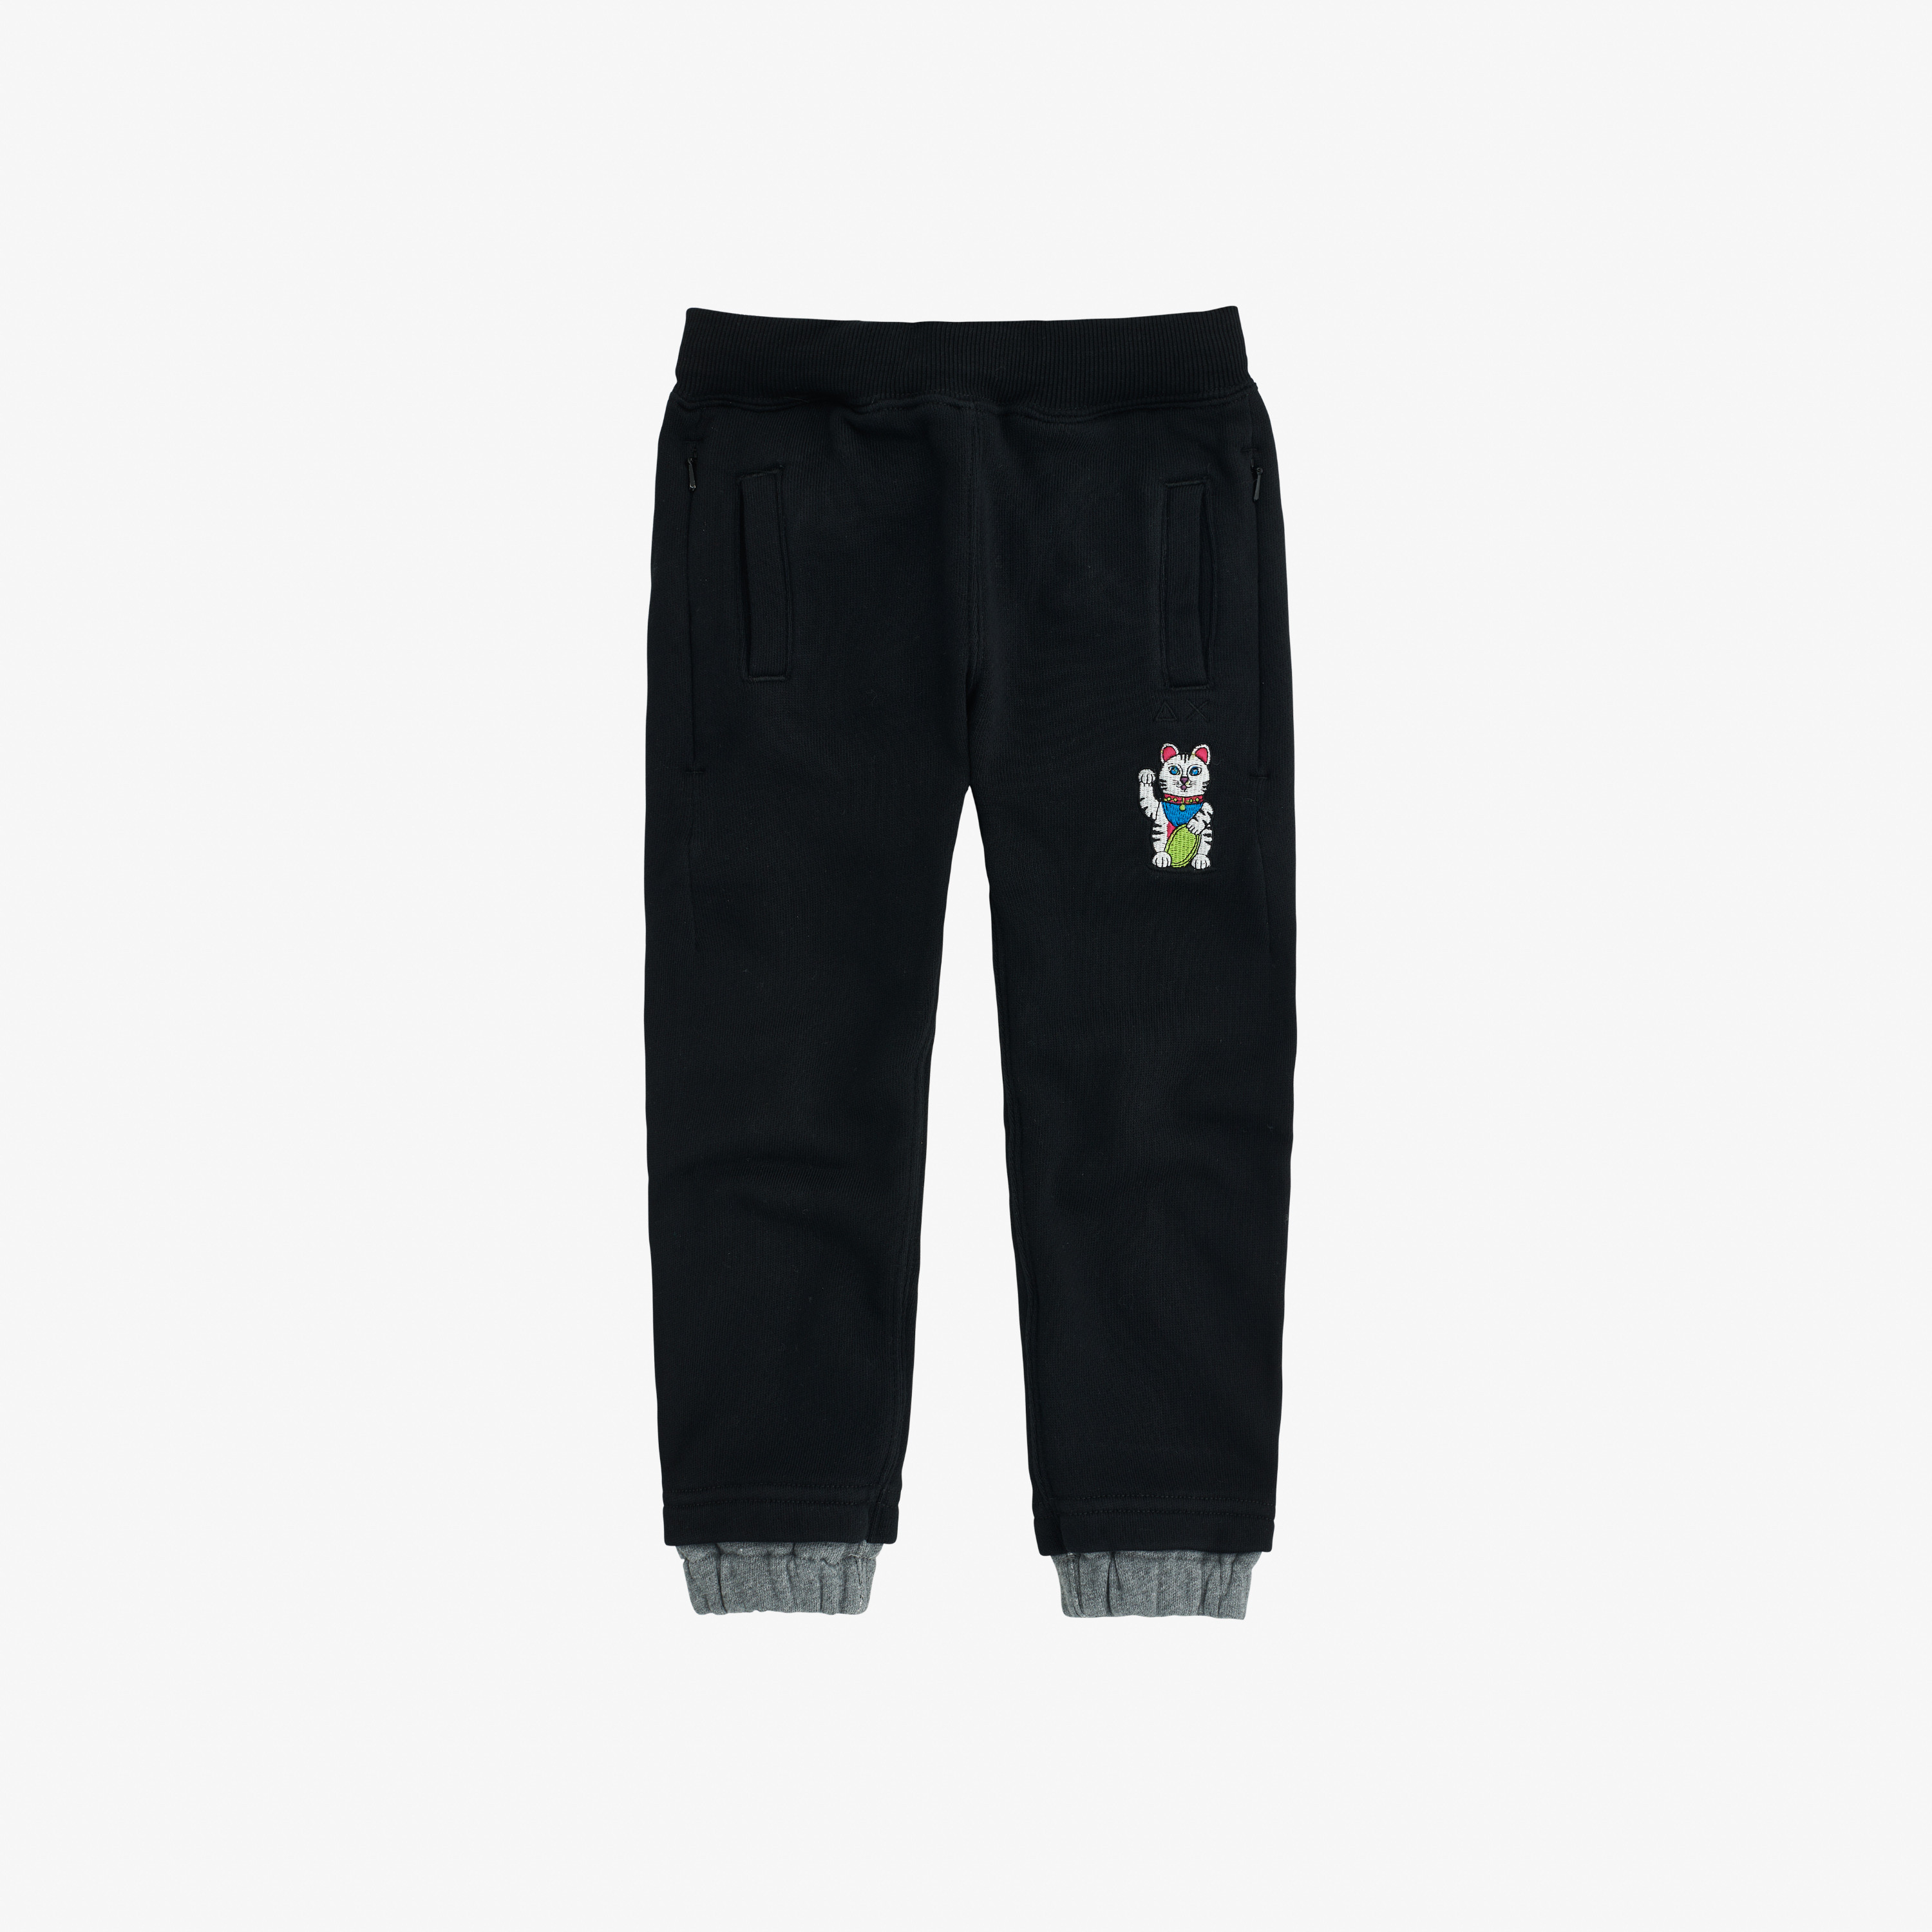 BOY'S PANT LONG COTT.FL BLACK